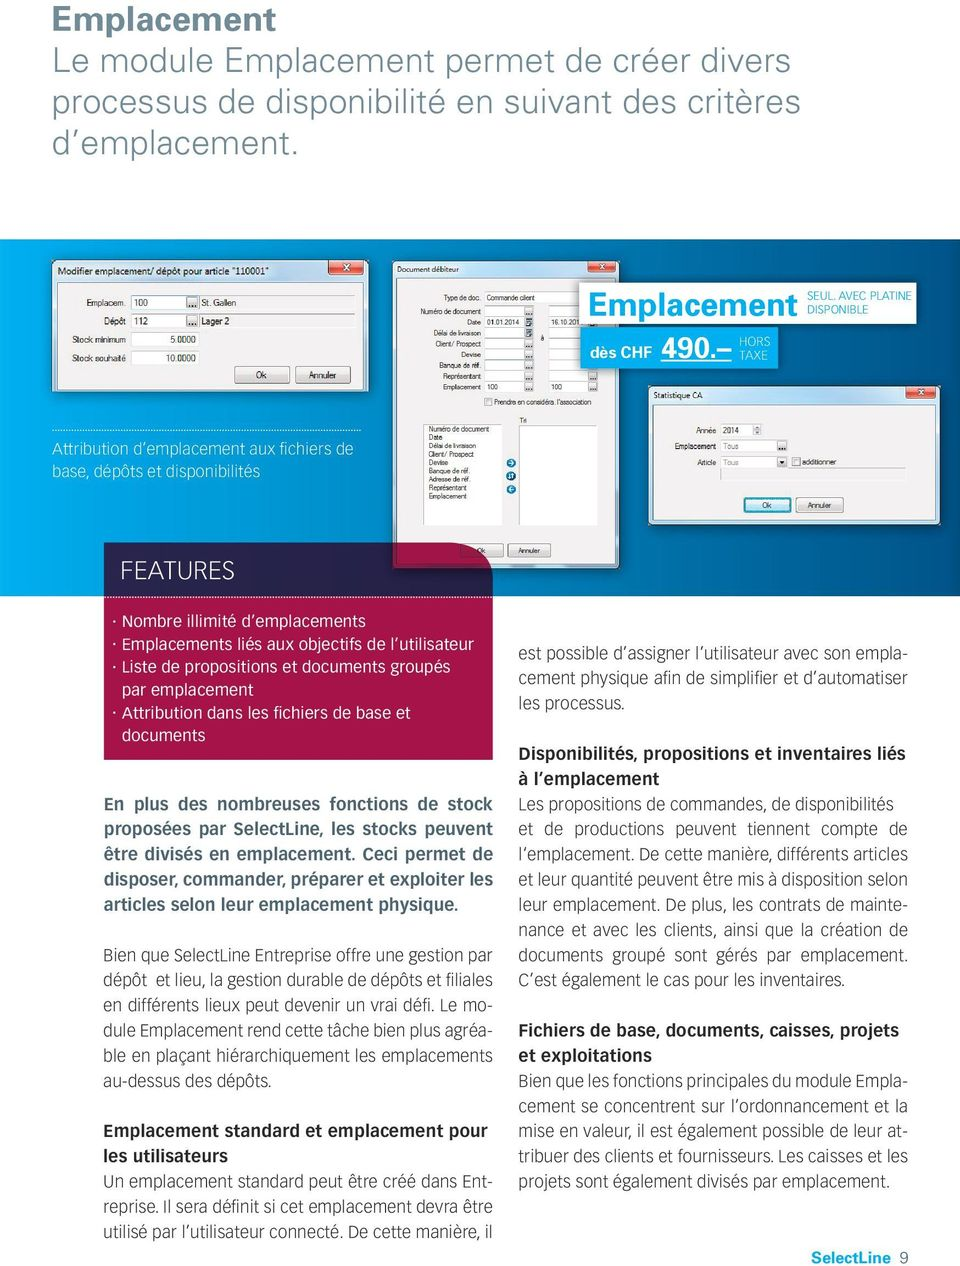 Liste de propositions et documents groupés par emplacement.